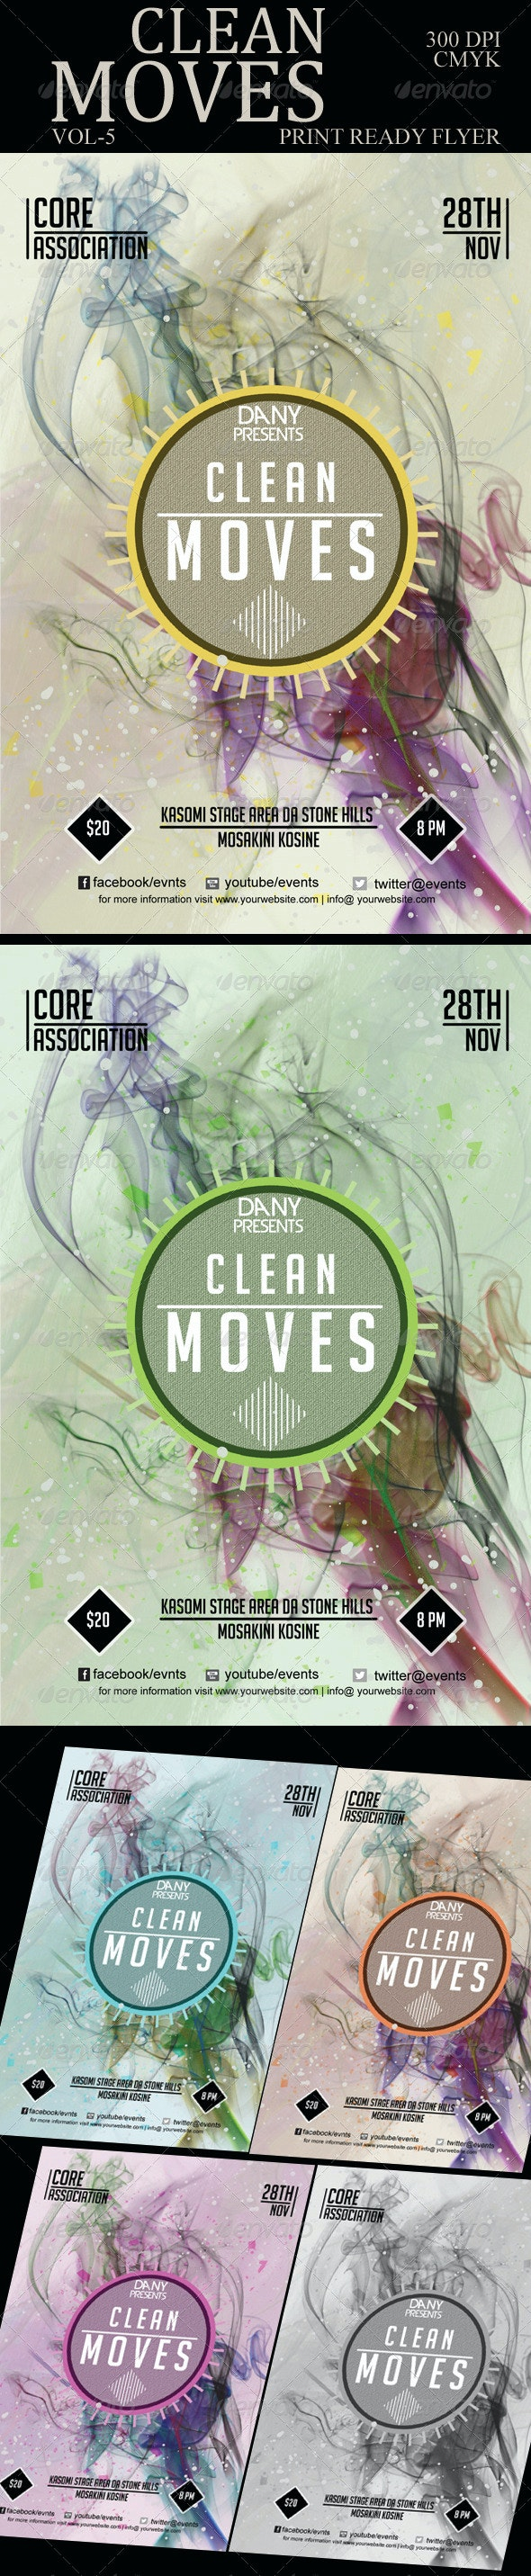 Clean Moves Flyer 5 - Clubs & Parties Events